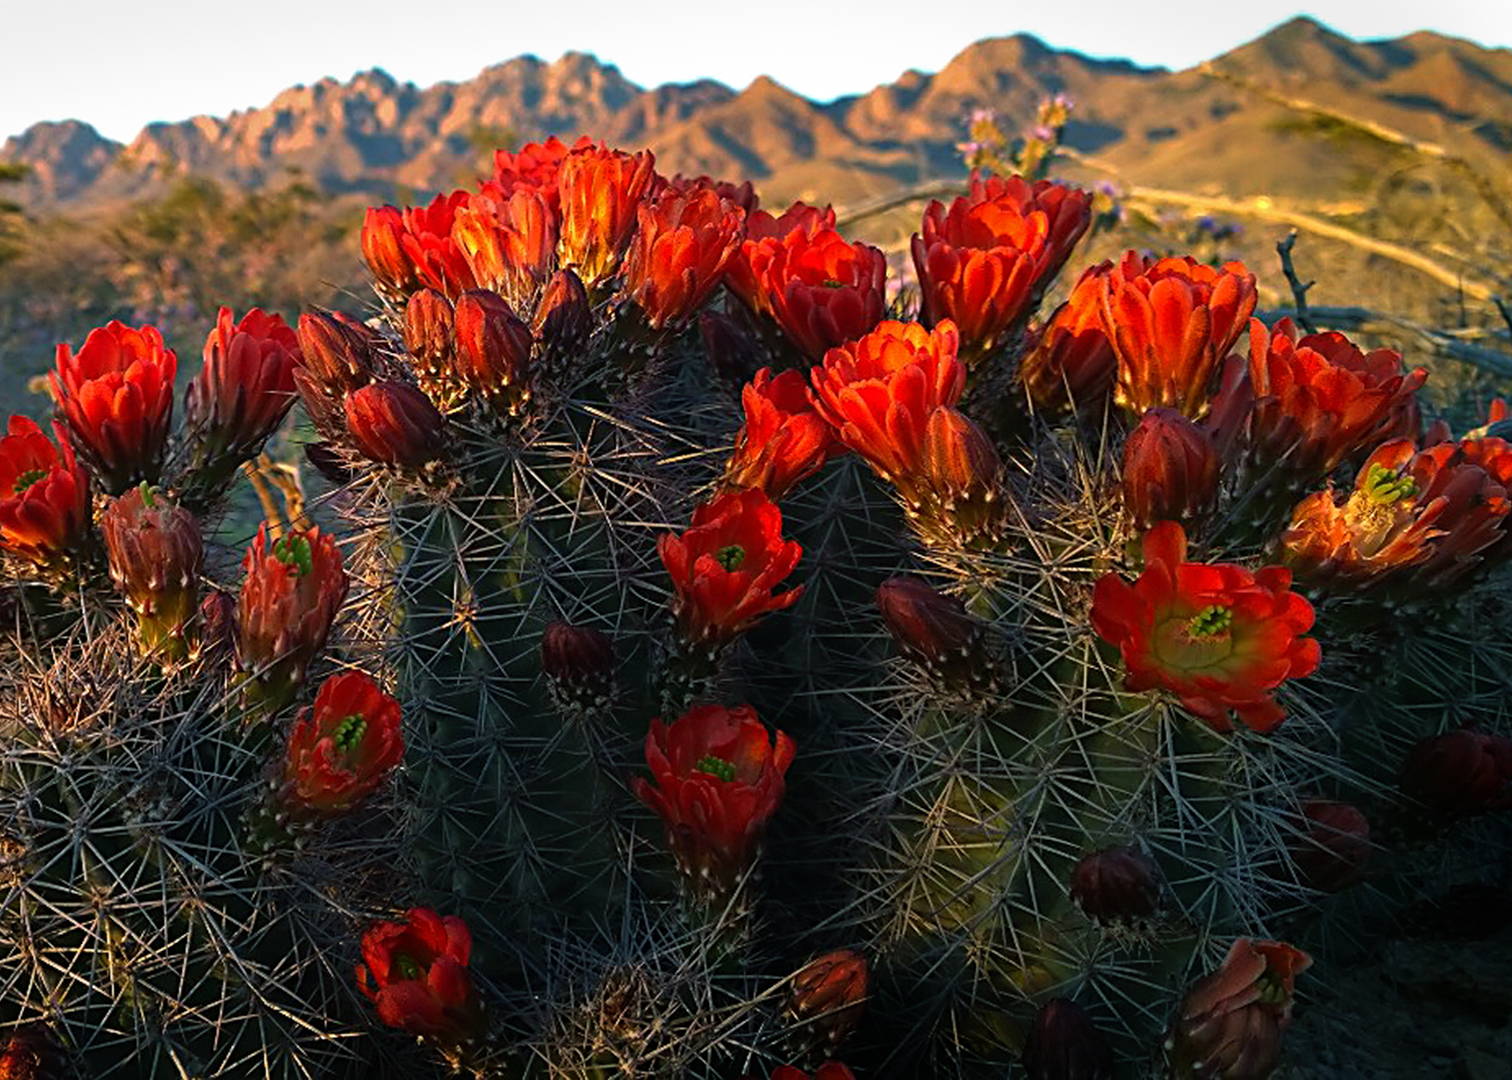 Soledad Canyon Blooming Cactus